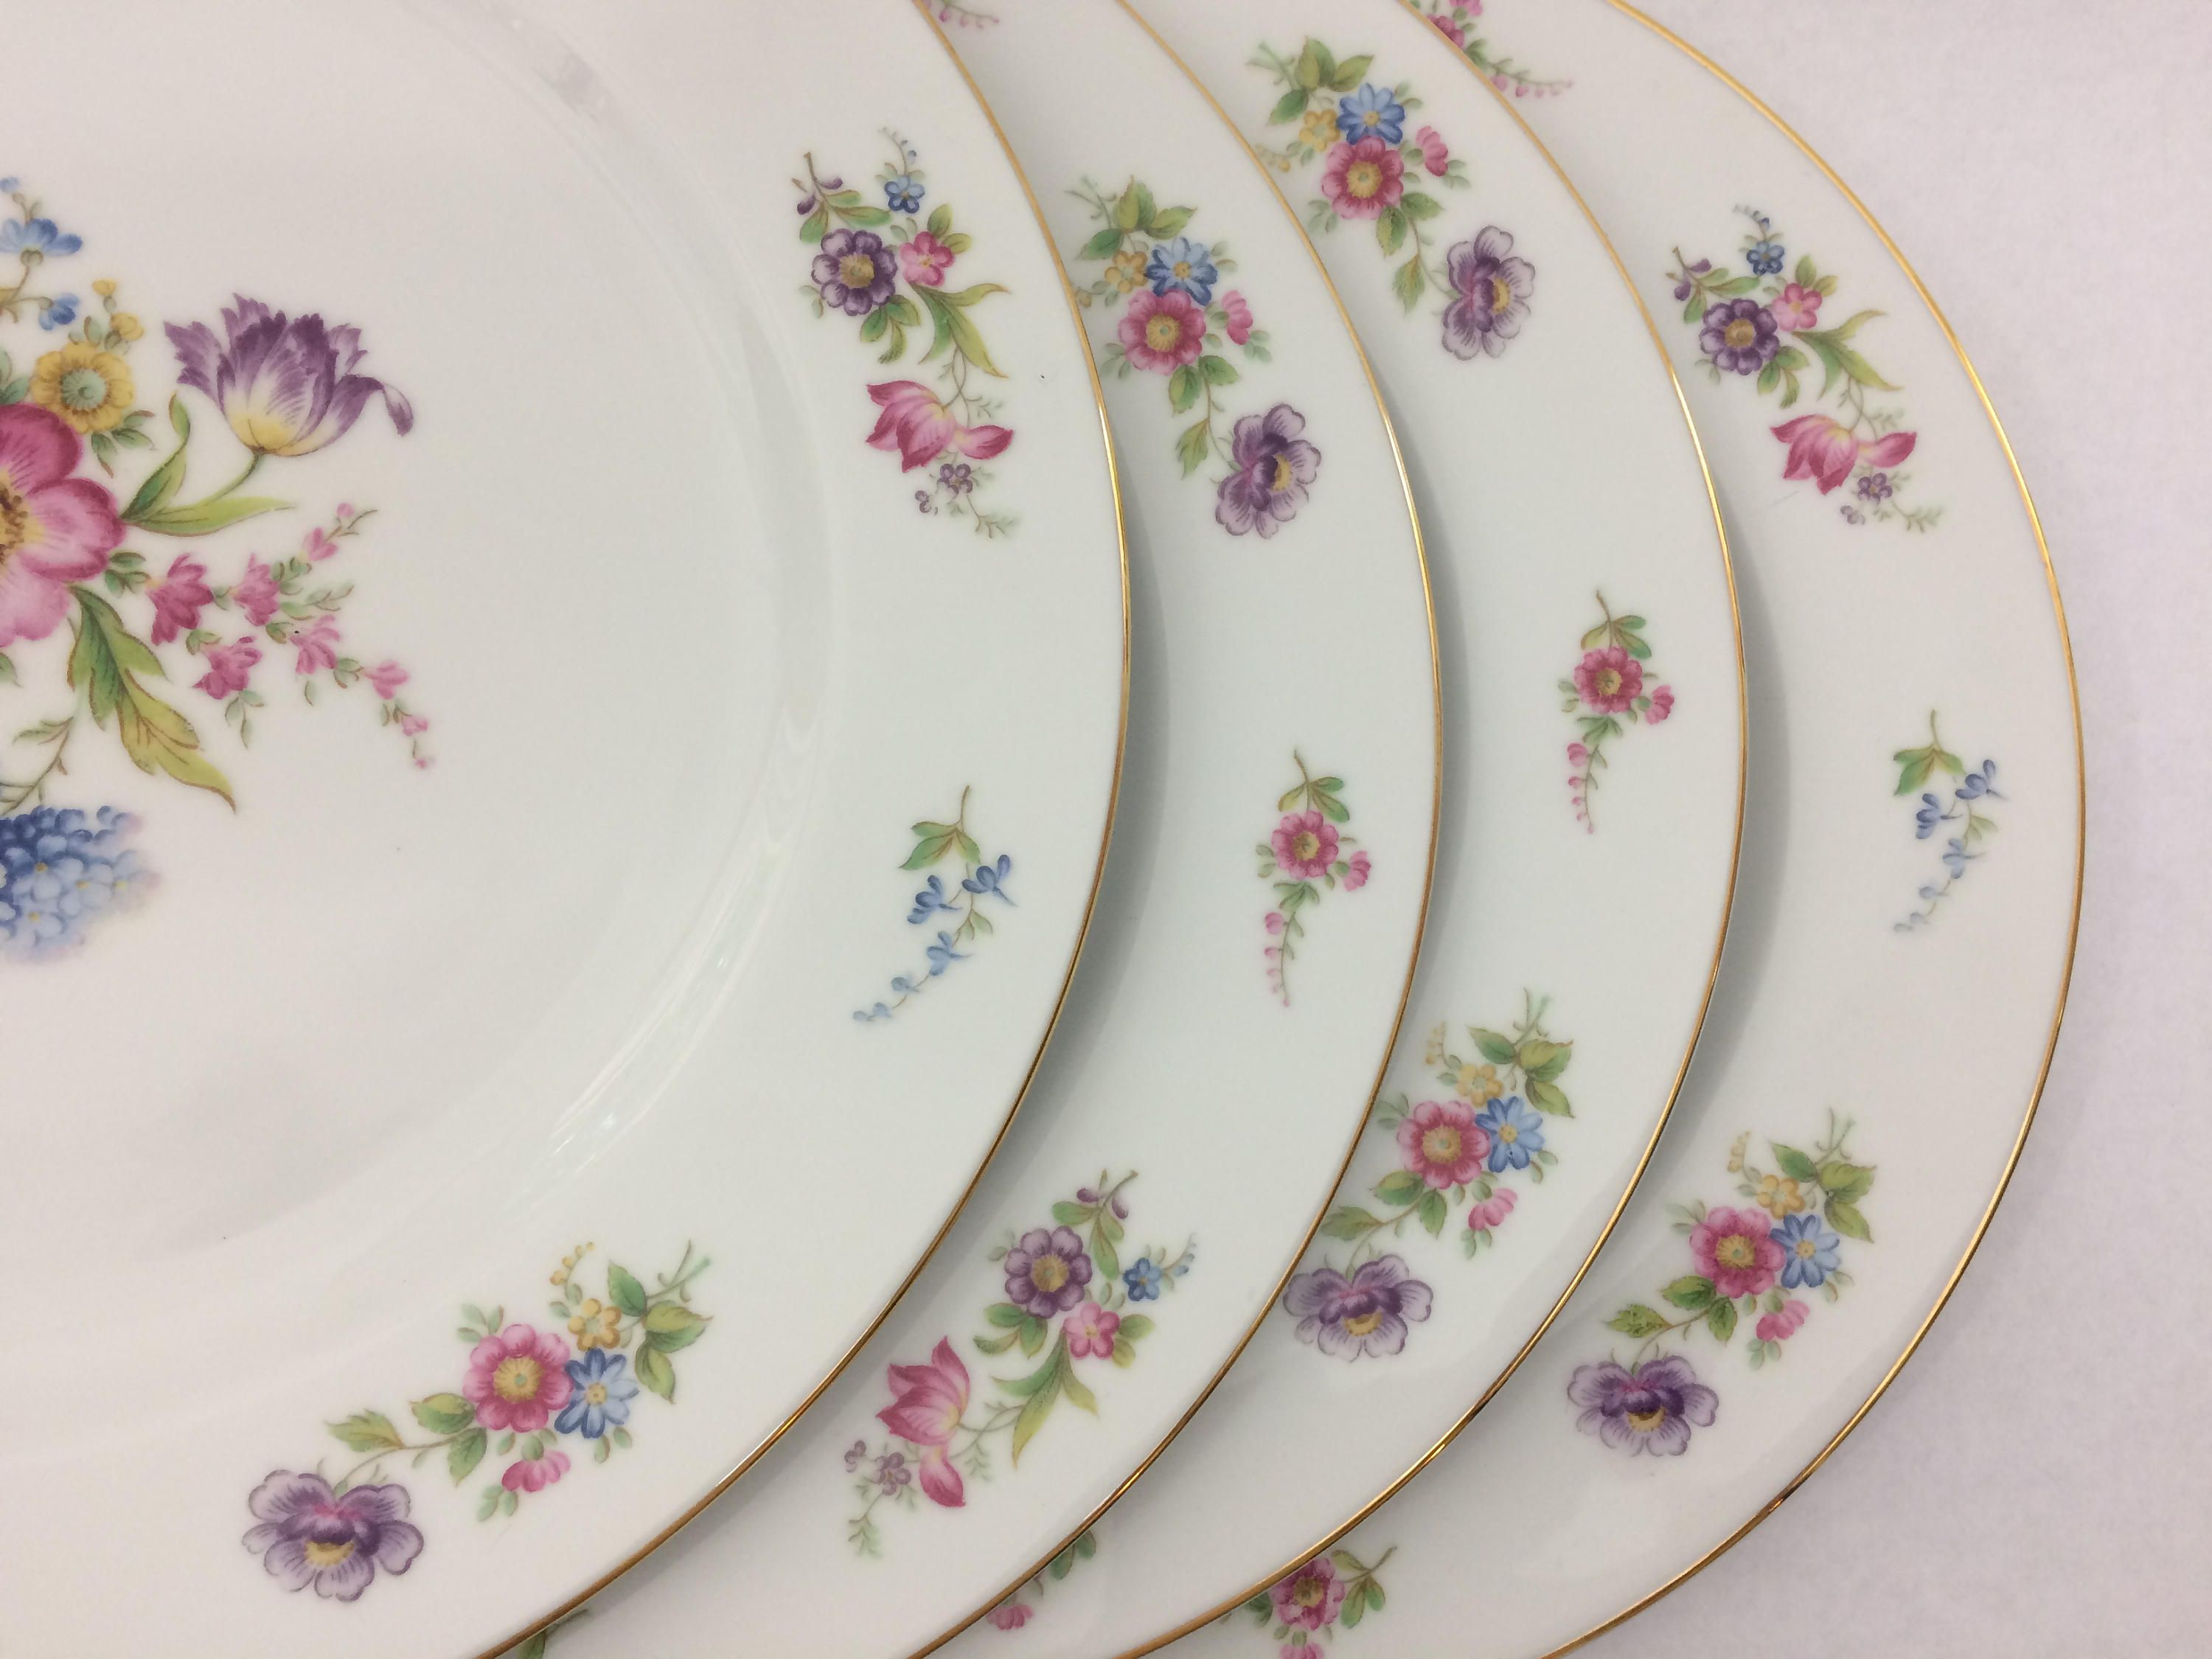 Vintage 8 Piece Noritake China Dresgay Pattern 4 Place Settings Dinner Plates and Salad Plates by & Vintage 8 Piece Noritake China Dresgay Pattern 4 Place Settings ...